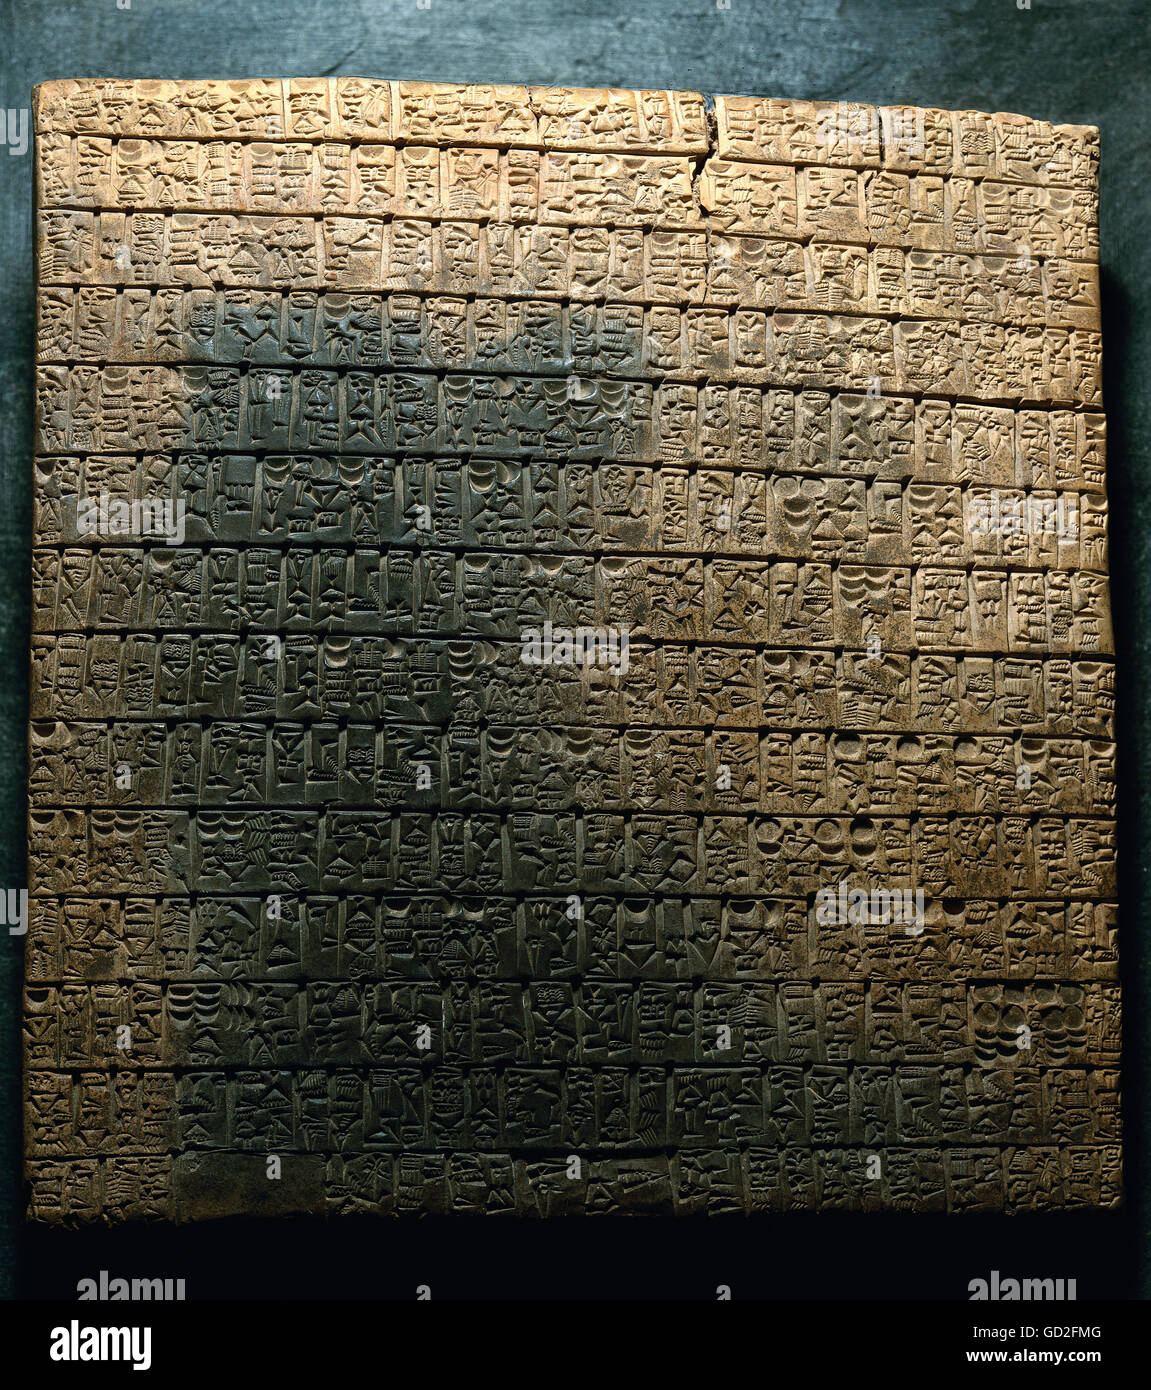 Cuneiform Script Stock Photos Cuneiform Script Stock Images Alamy